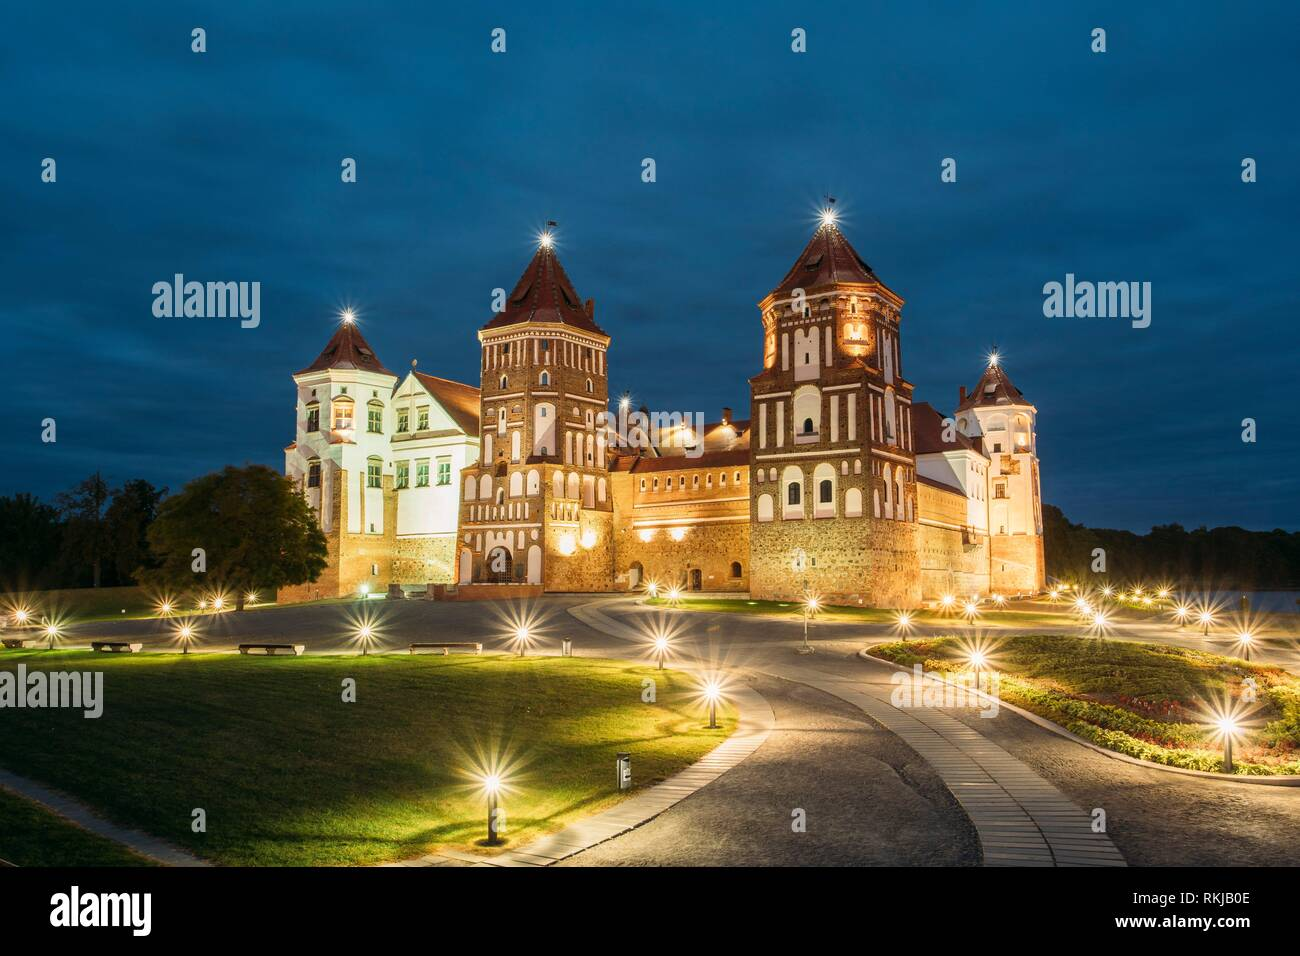 Mir, Belarus. Mir Castle Complex In Evening Illumination Lighting. Famous Landmark, Ancient Gothic Monument Of Feudalism Under Blue Night Sky. UNESCO - Stock Image